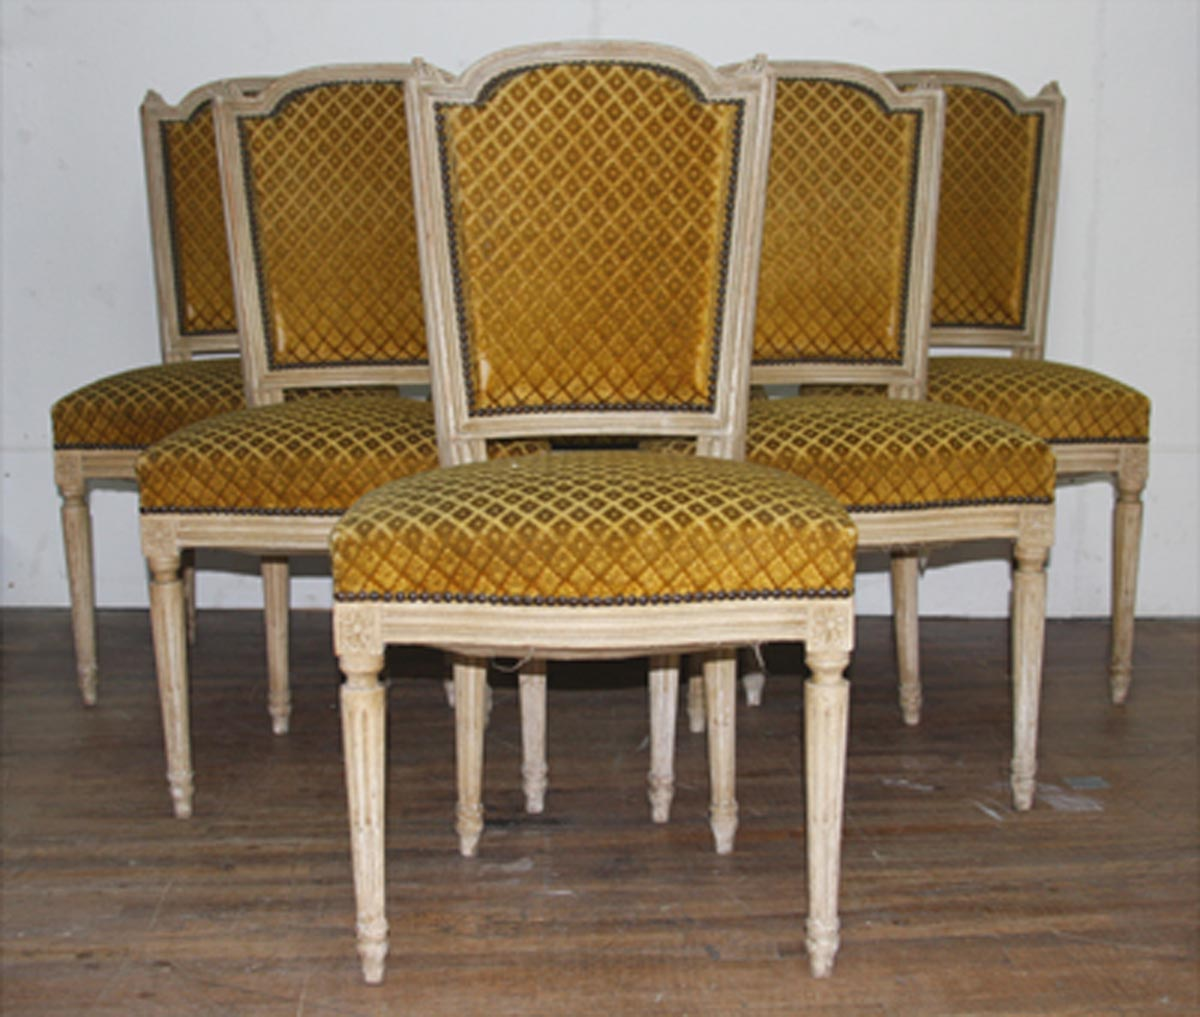 Set of 6 French Louis XVI Style Chairs